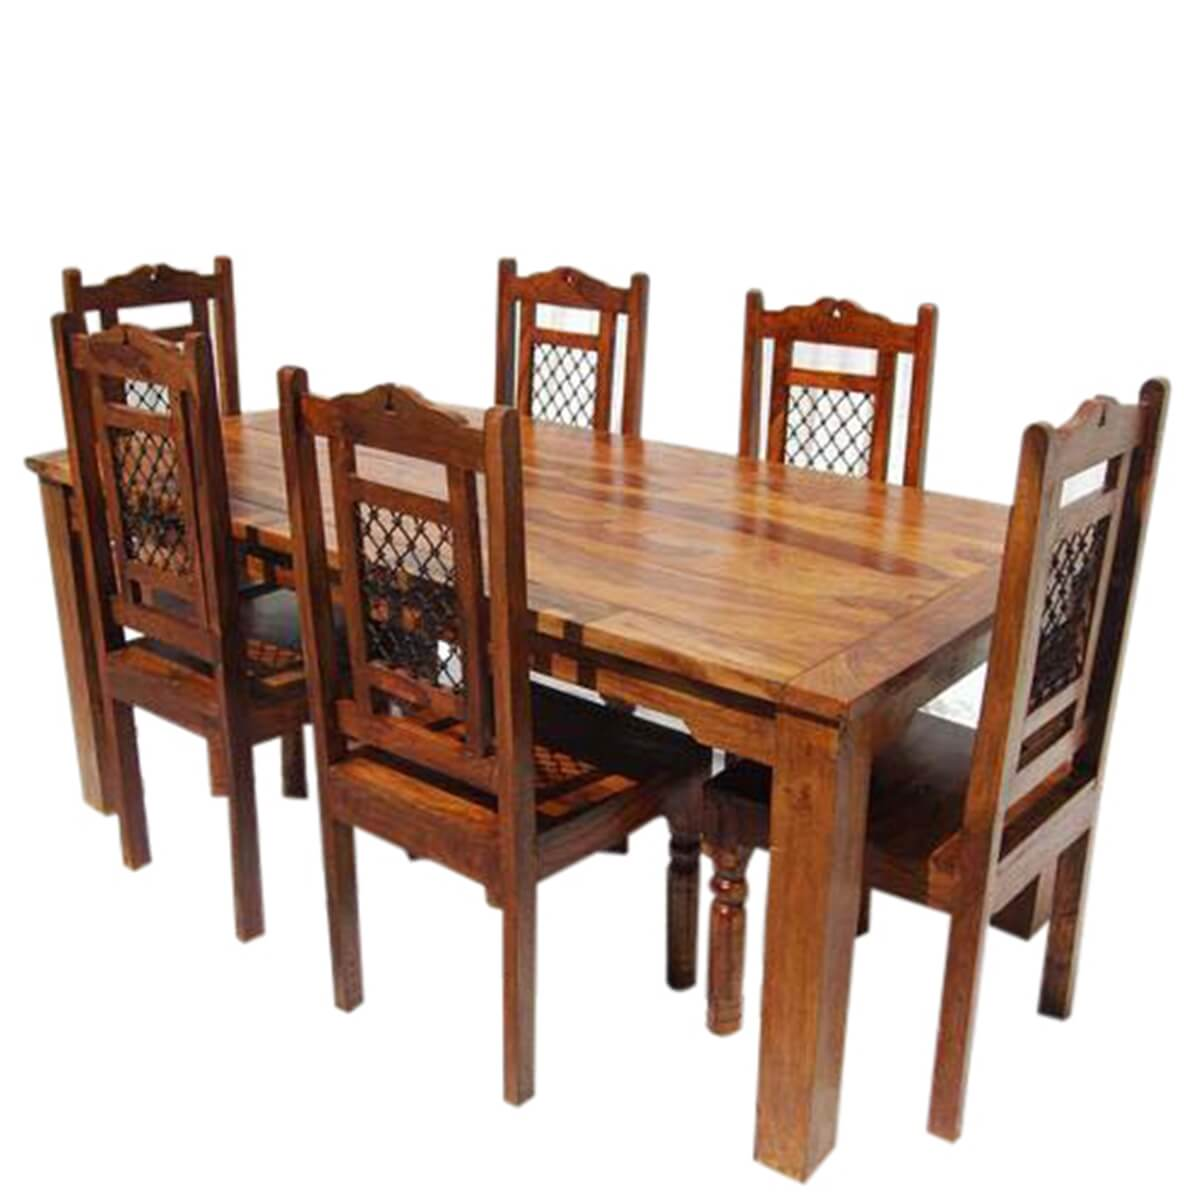 Farmhouse Table And Chairs Set Swiss Alps Solid Wood 7pc Farmhouse Dining Table And Chair Set